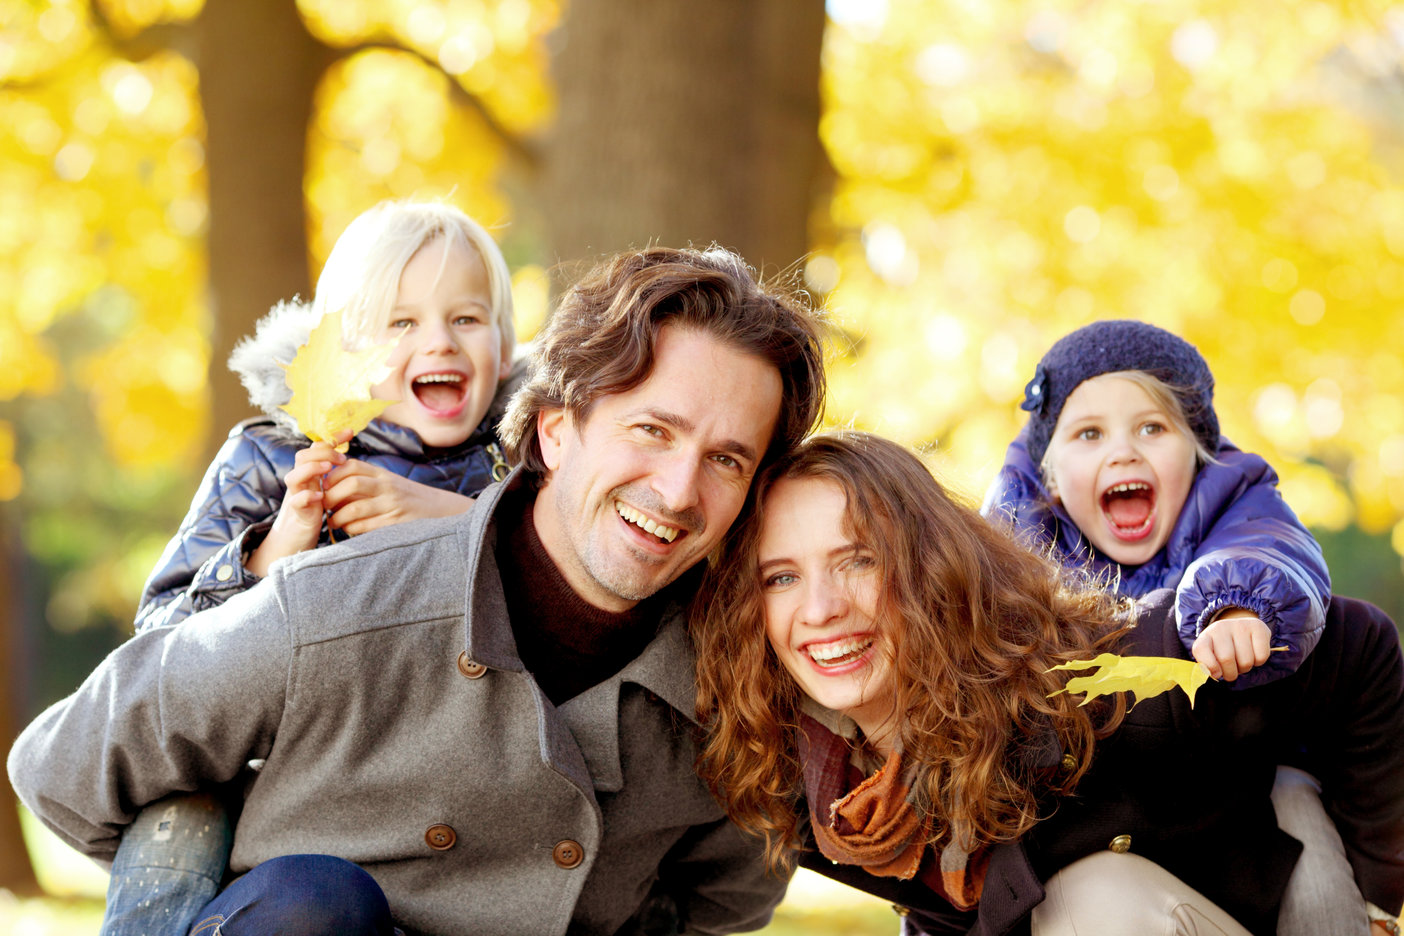 New Families: Balance Family Life Quality with Longer-Term Goals